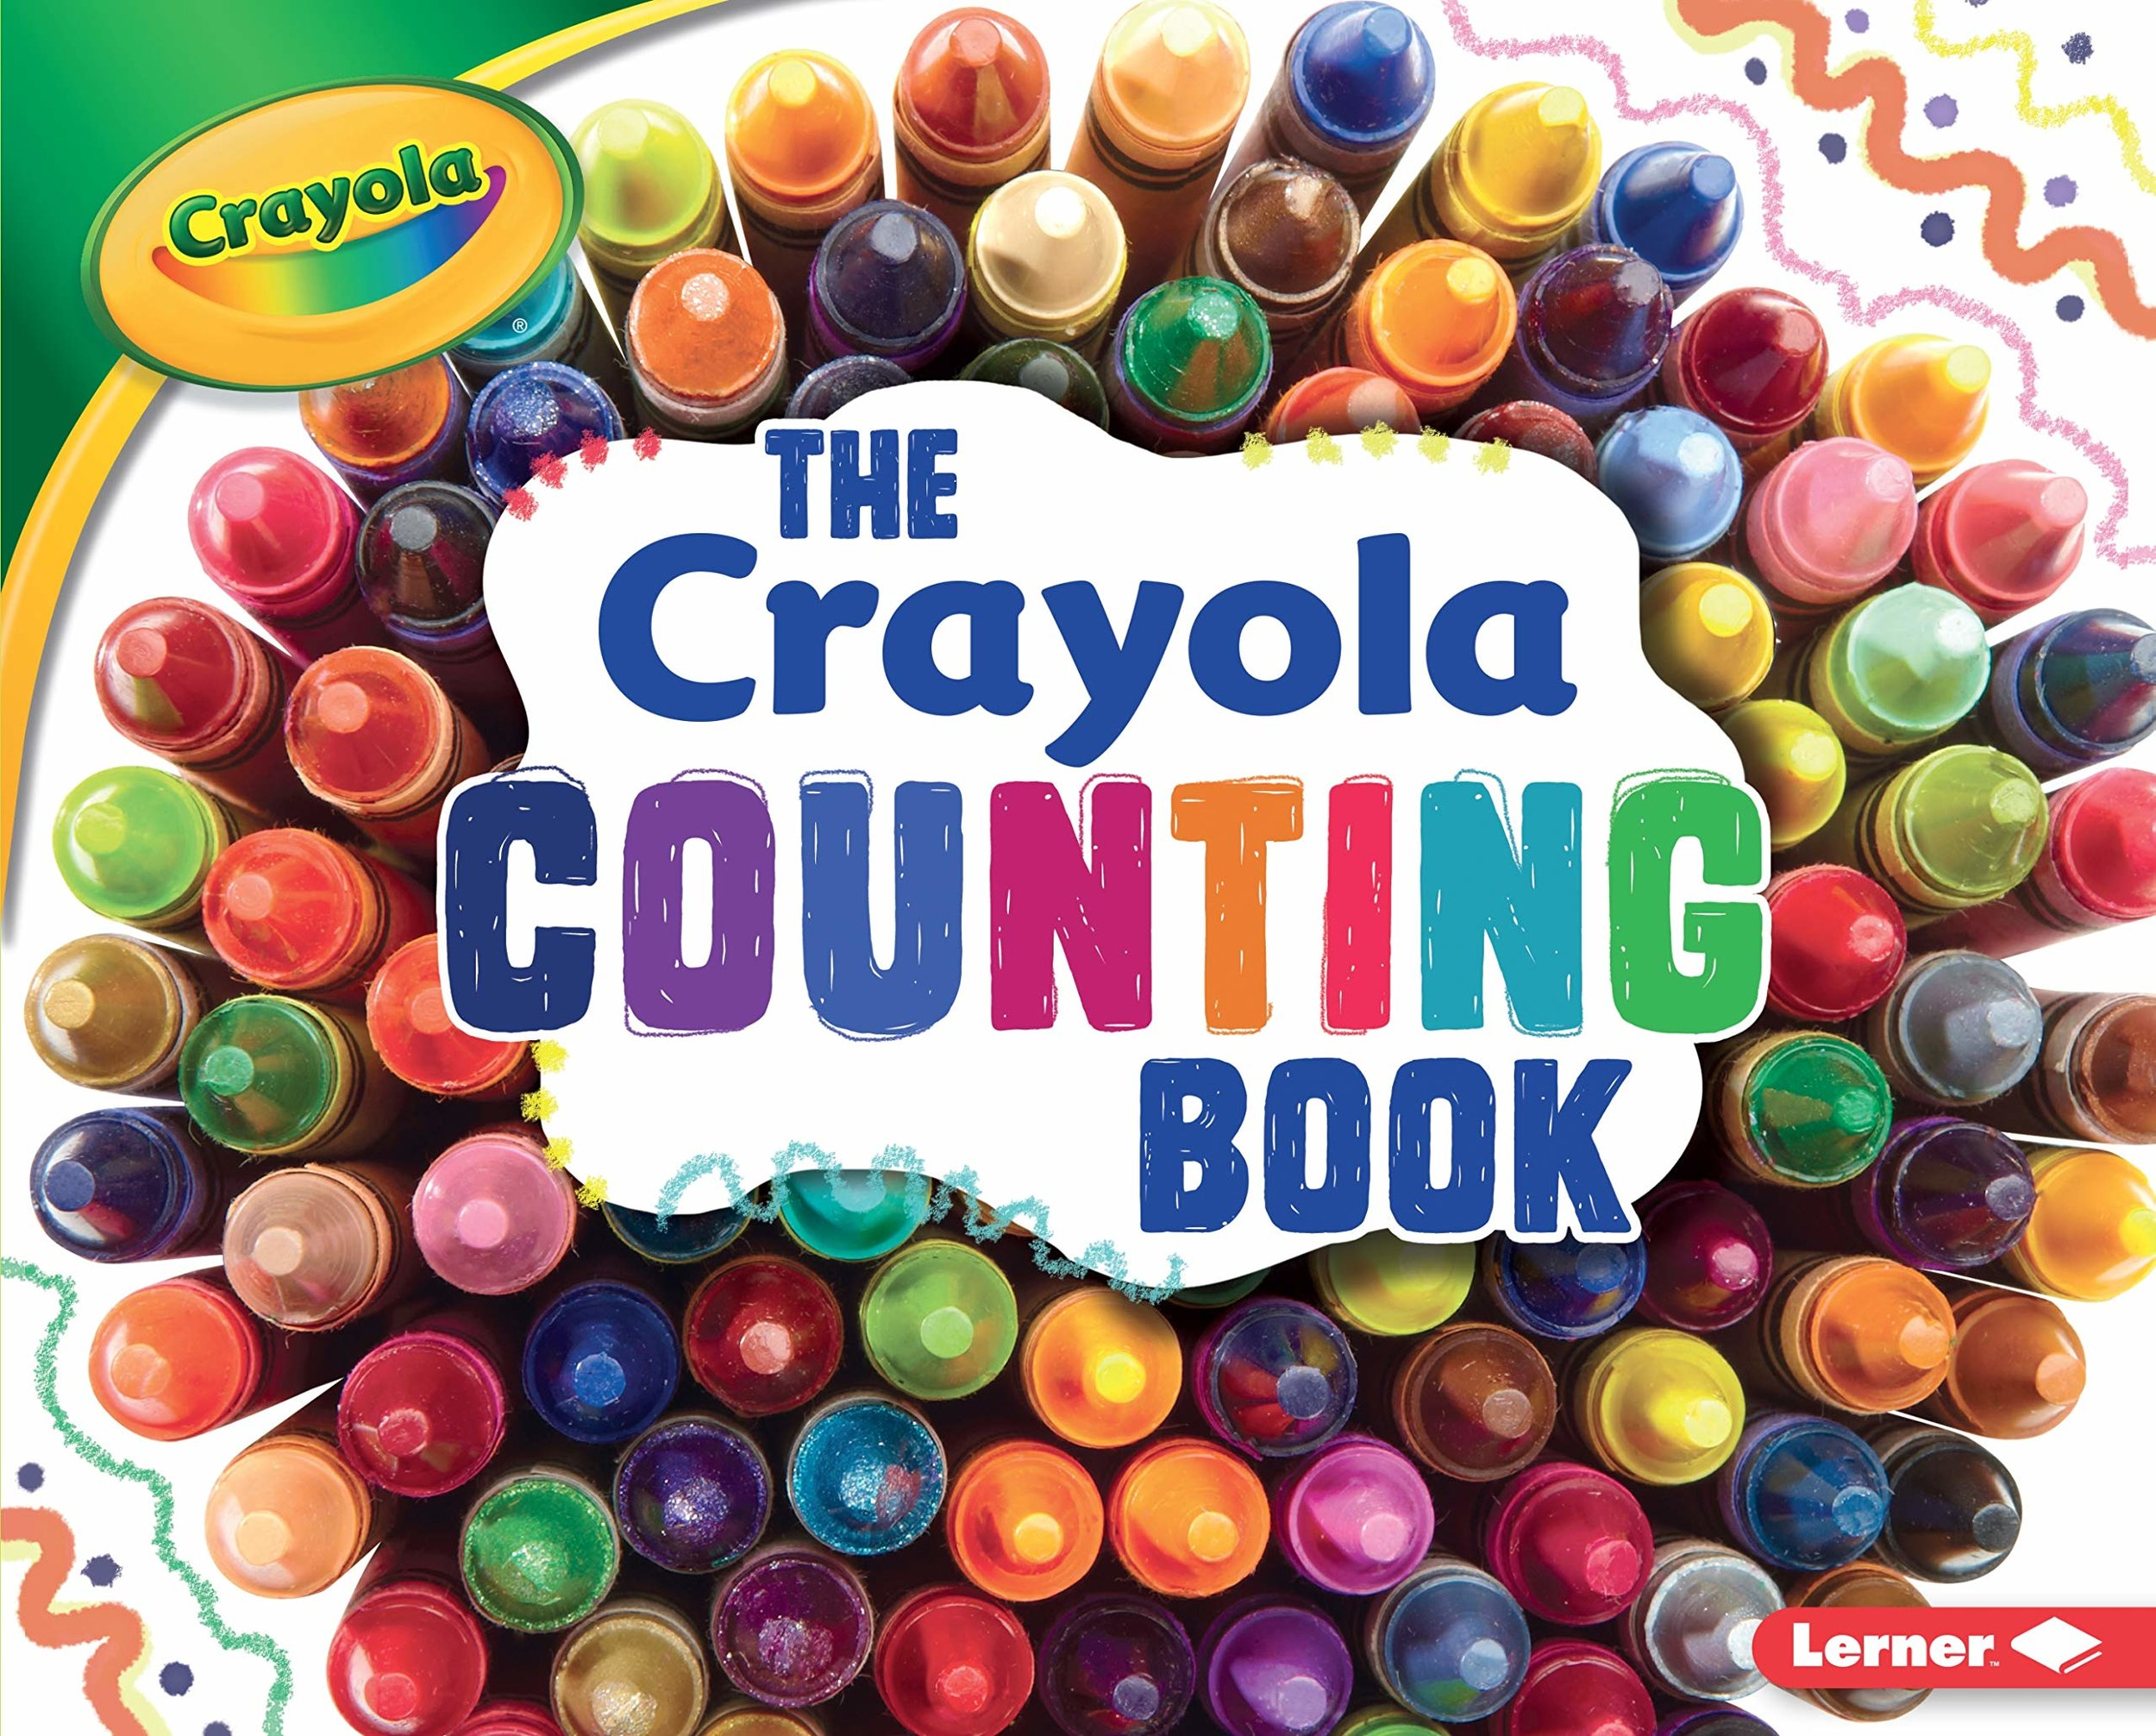 Crayola Counting Book.jpg